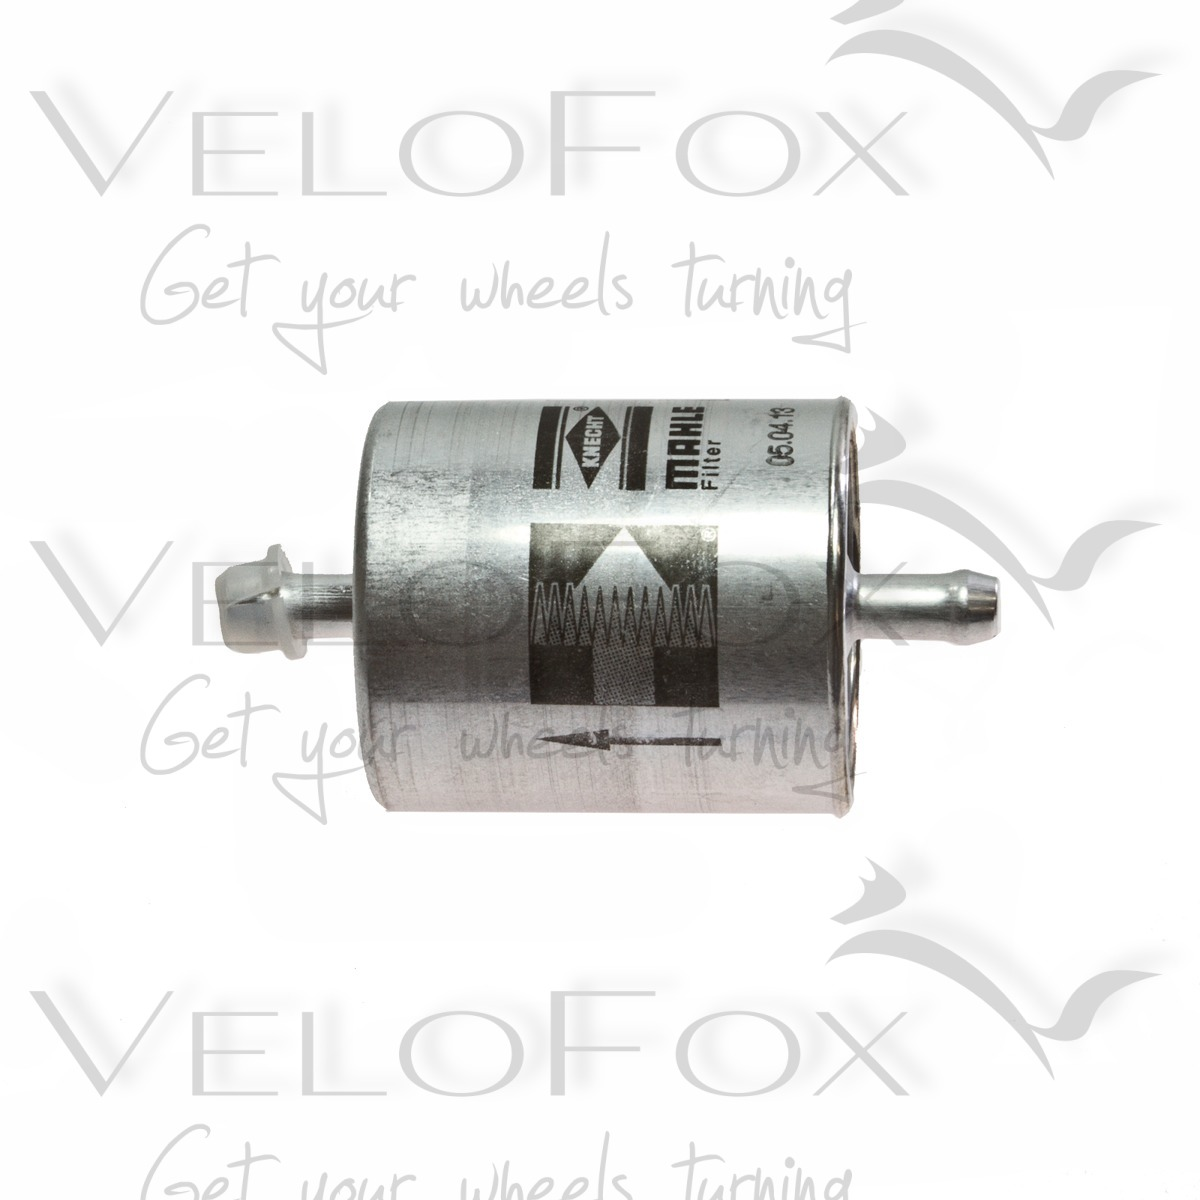 hight resolution of mahle fuel filter fits ducati monster 1000 ie 2004 2005